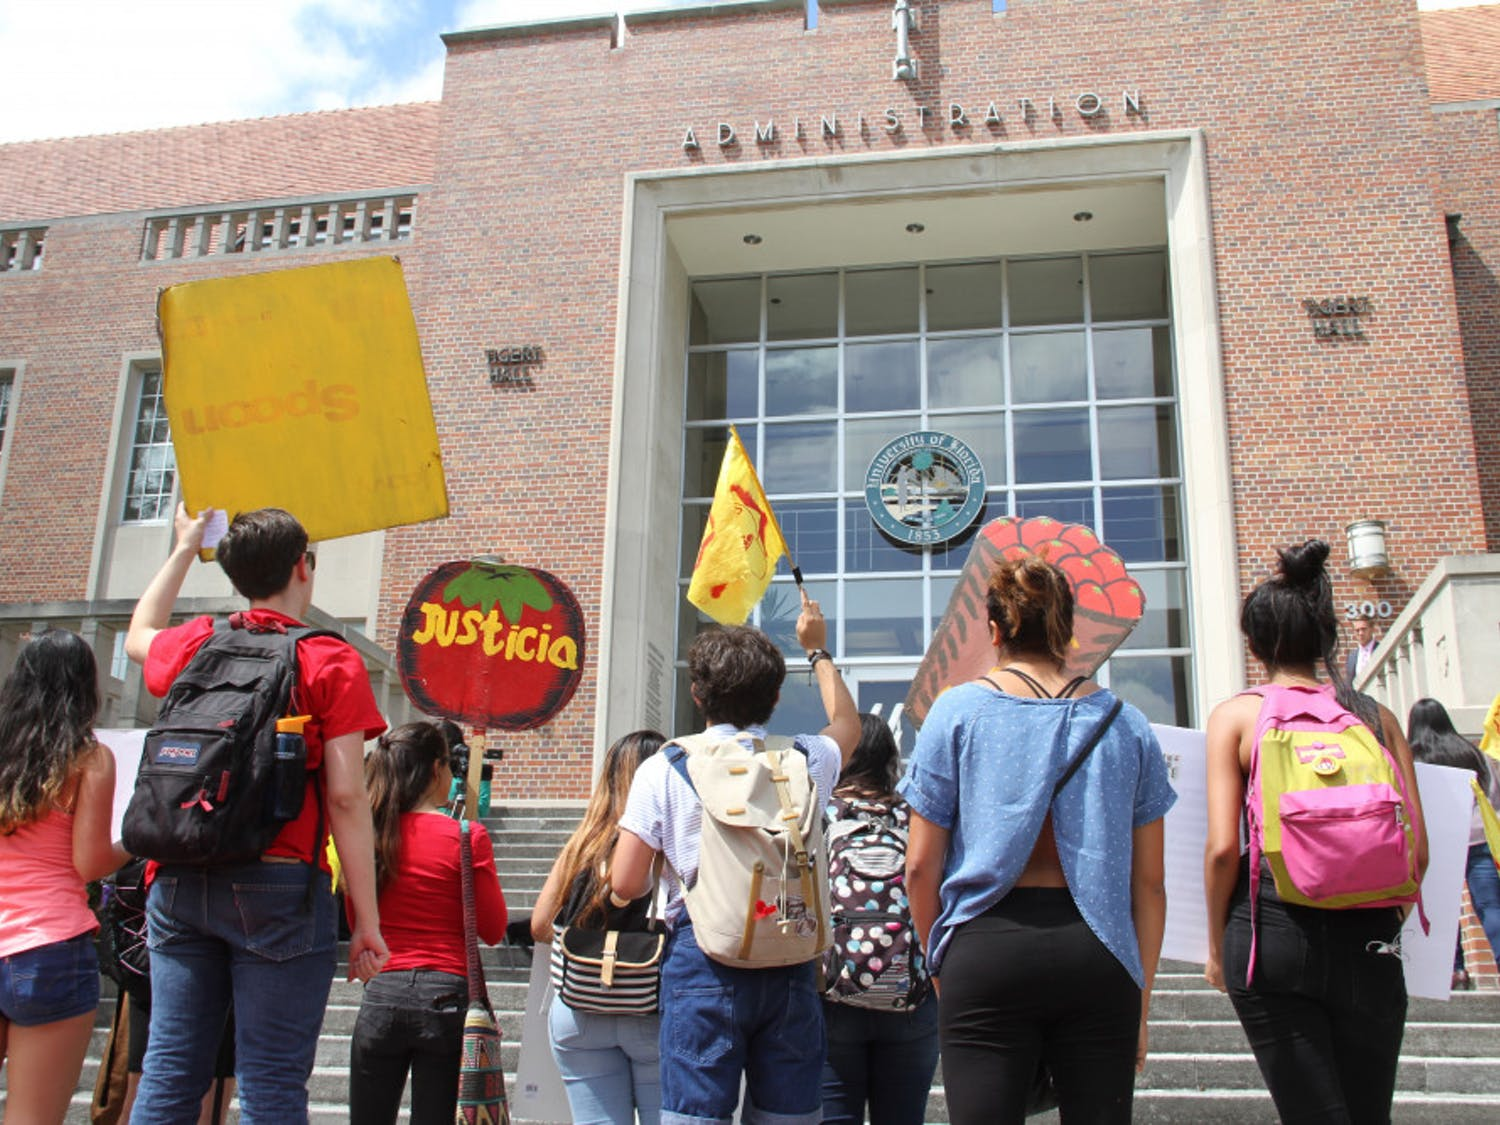 """Protesters walked from the Reitz Union, where the on-campus Wendy's location is, to Tigert Hall on Thursday afternoon to demand that the school's administration tells the fast food chain to sign onto the Fair Food Program, which works to protect farmers' rights. Before they marched, speakers told the group of about 20 students Wendy's was not serving the interests of migrant farmers. Organizer Daphne Fernandez said all workers deserve a living wage. """"Having Wendy's on this campus is an ethical dilemma,"""" she said. """"We are going to pressure Fuchs to remove Wendy's from our campus."""""""